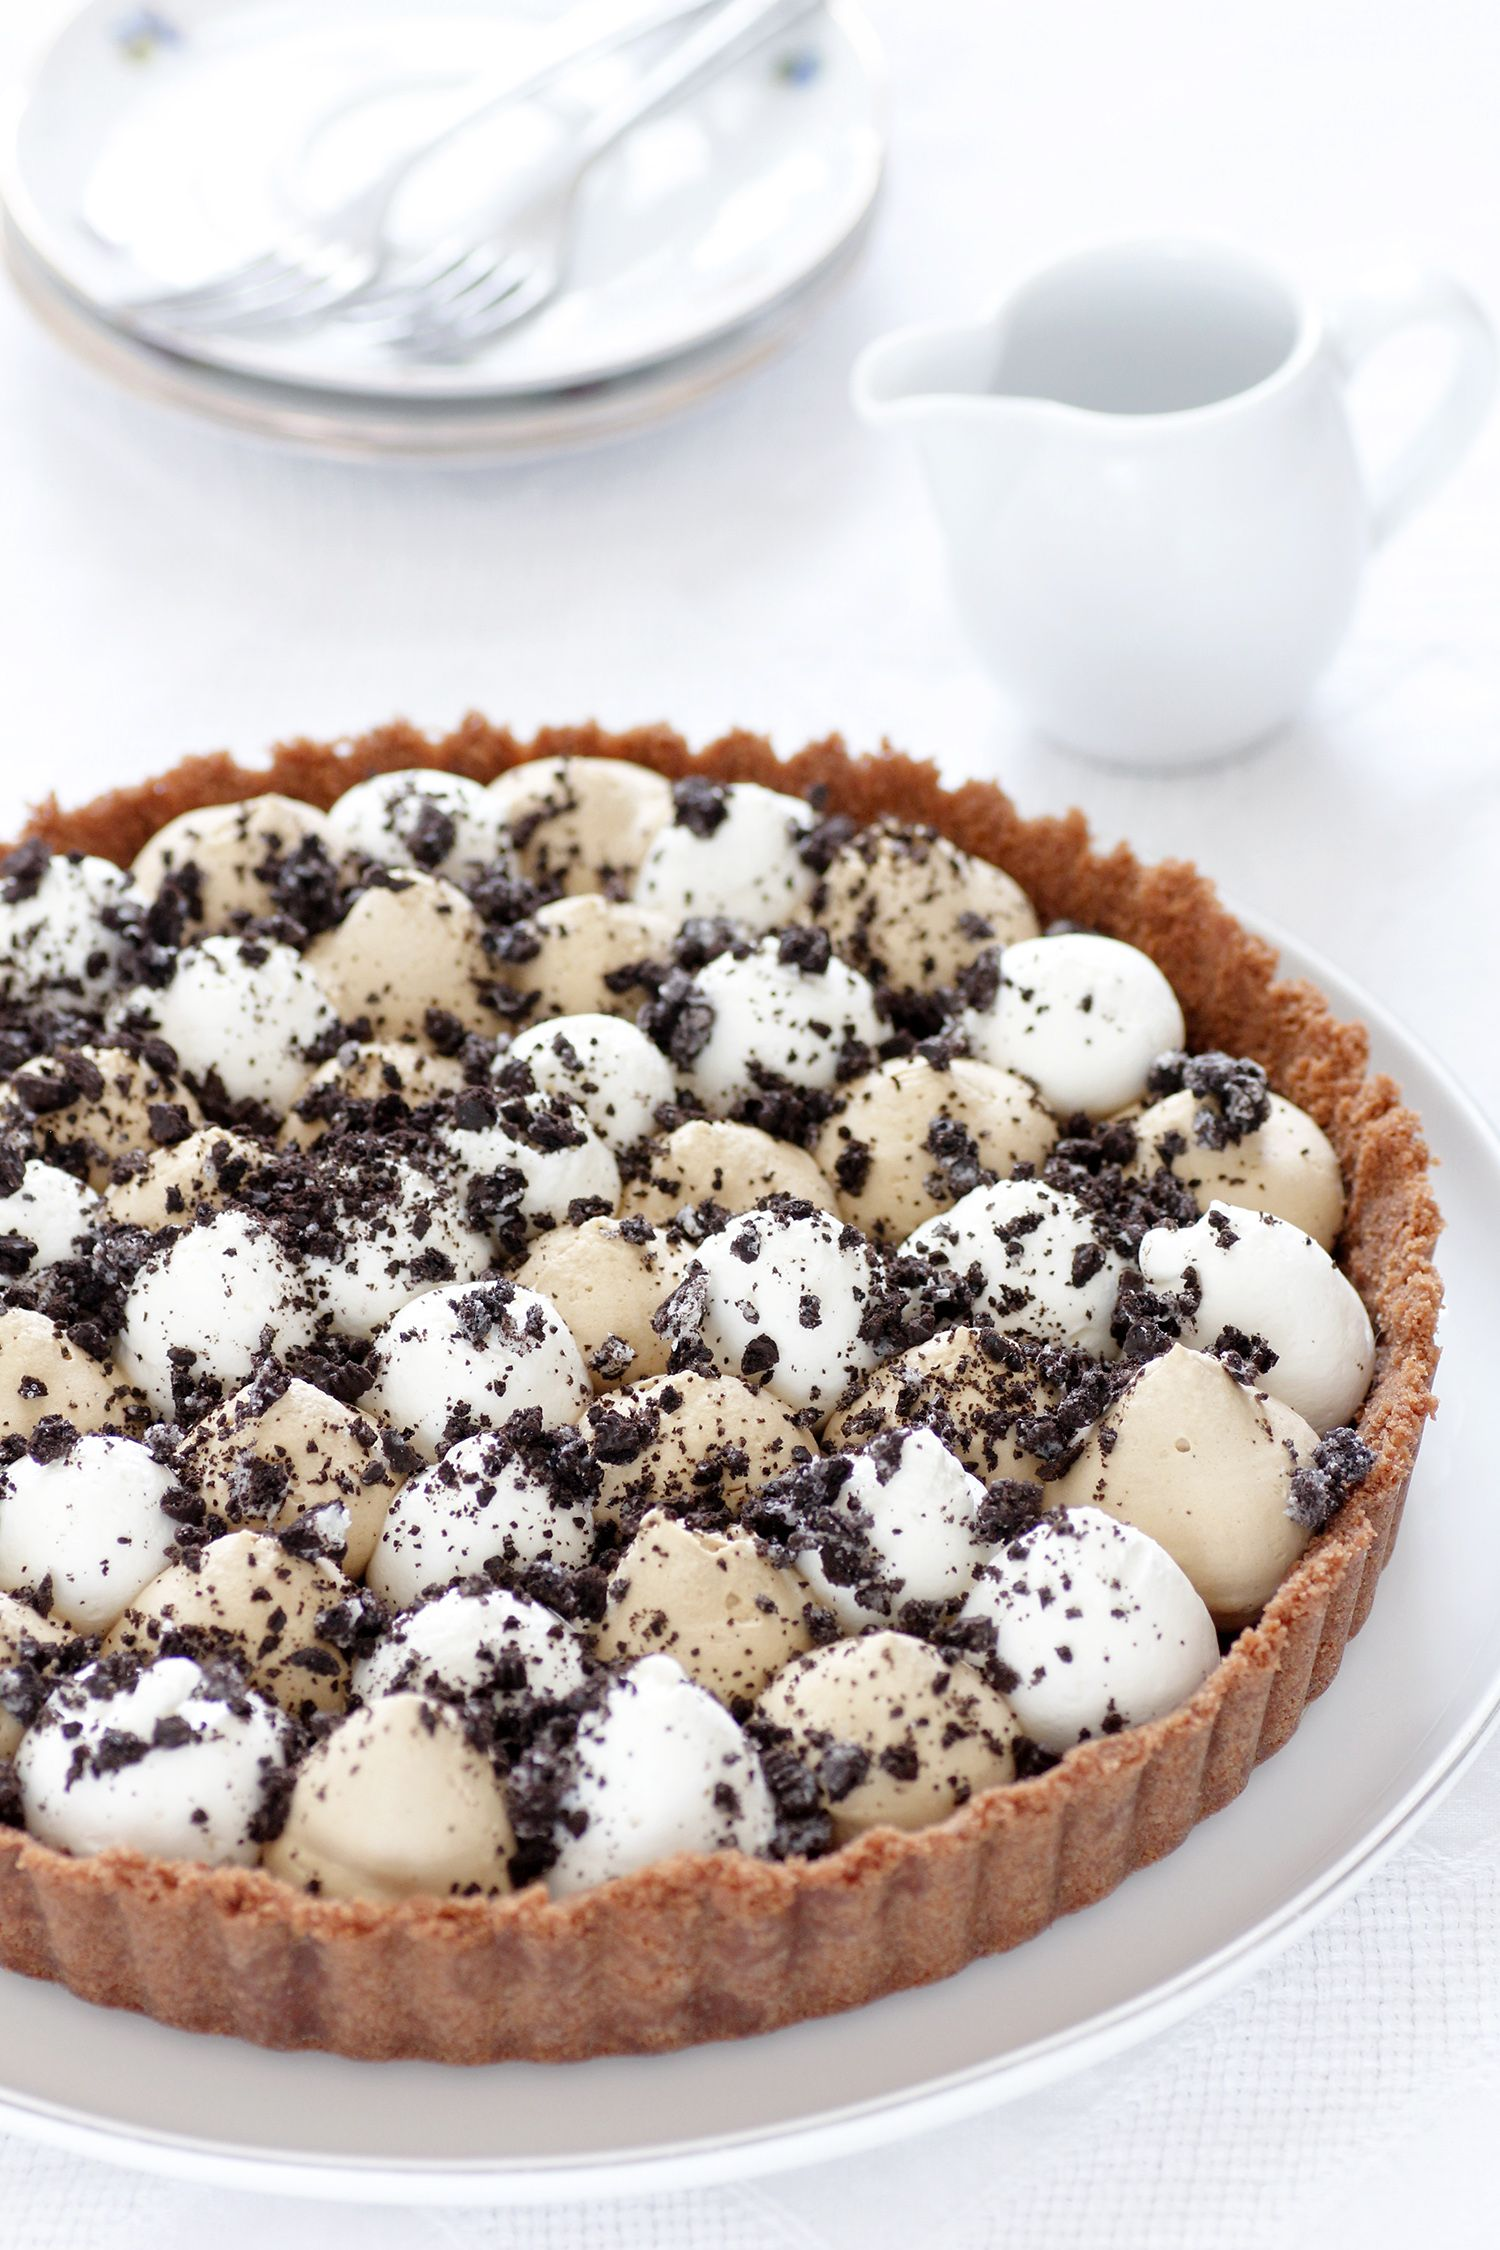 No Bake Coffee Mascarpone Tart with Chocolate Ganache